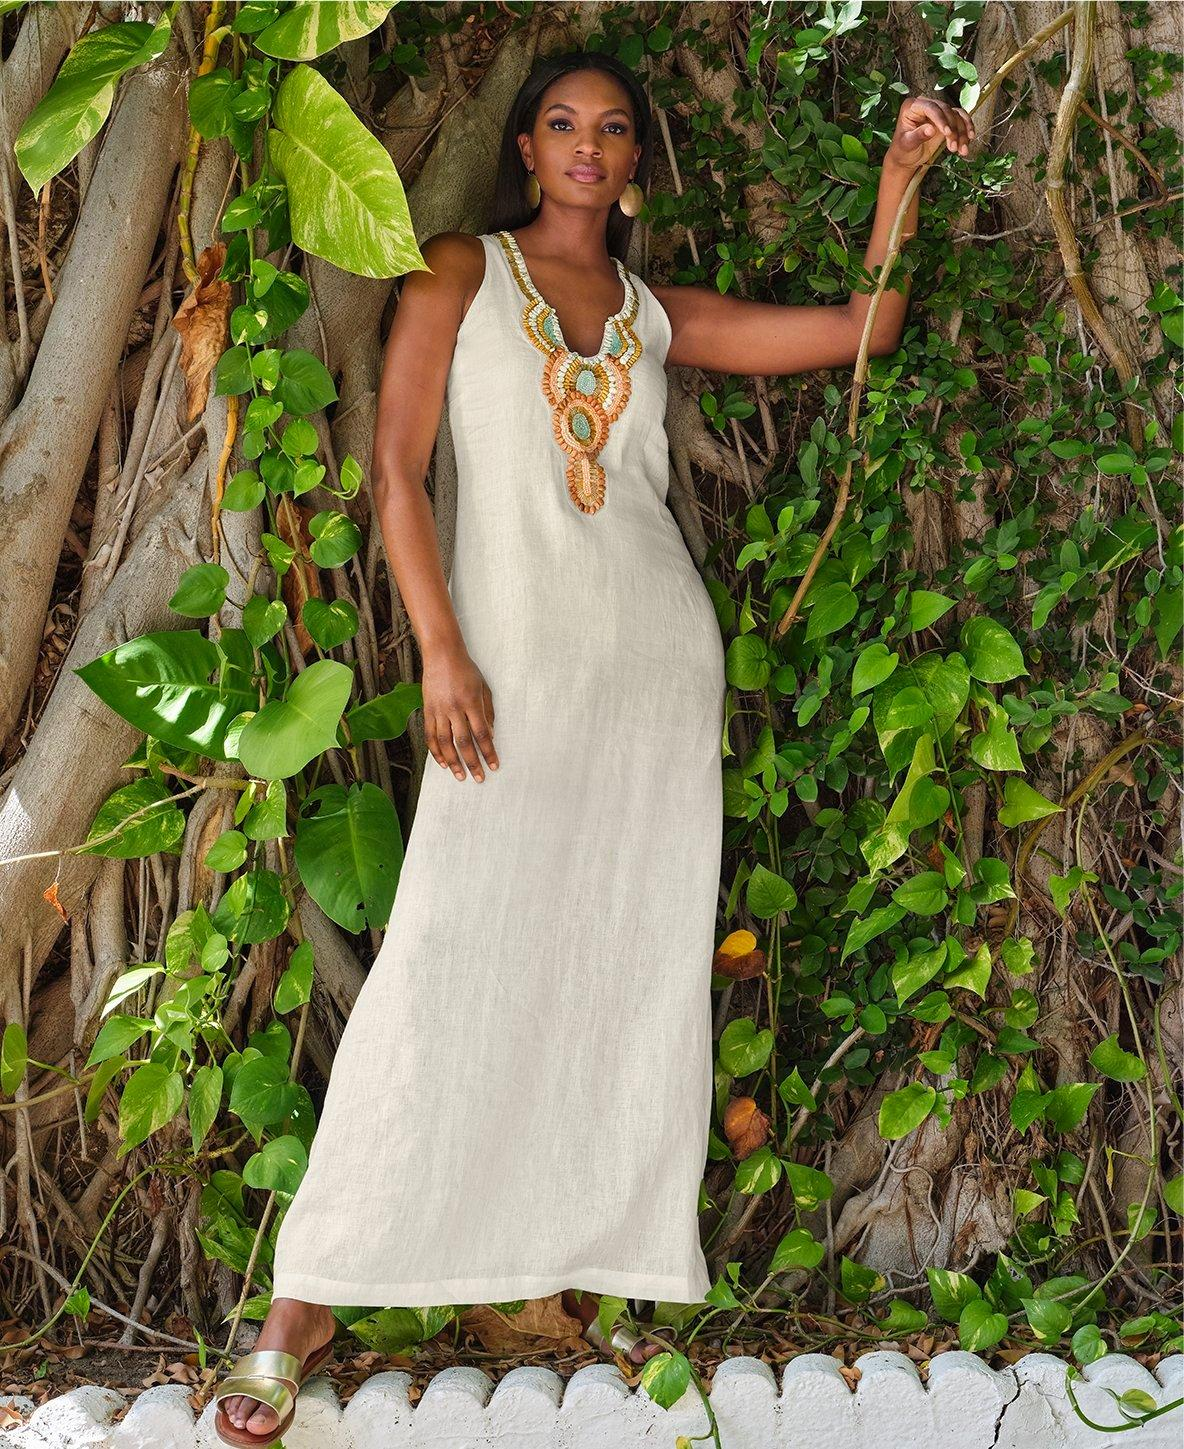 model wearing a white sleeveless maxi dress with an embellished neckline.